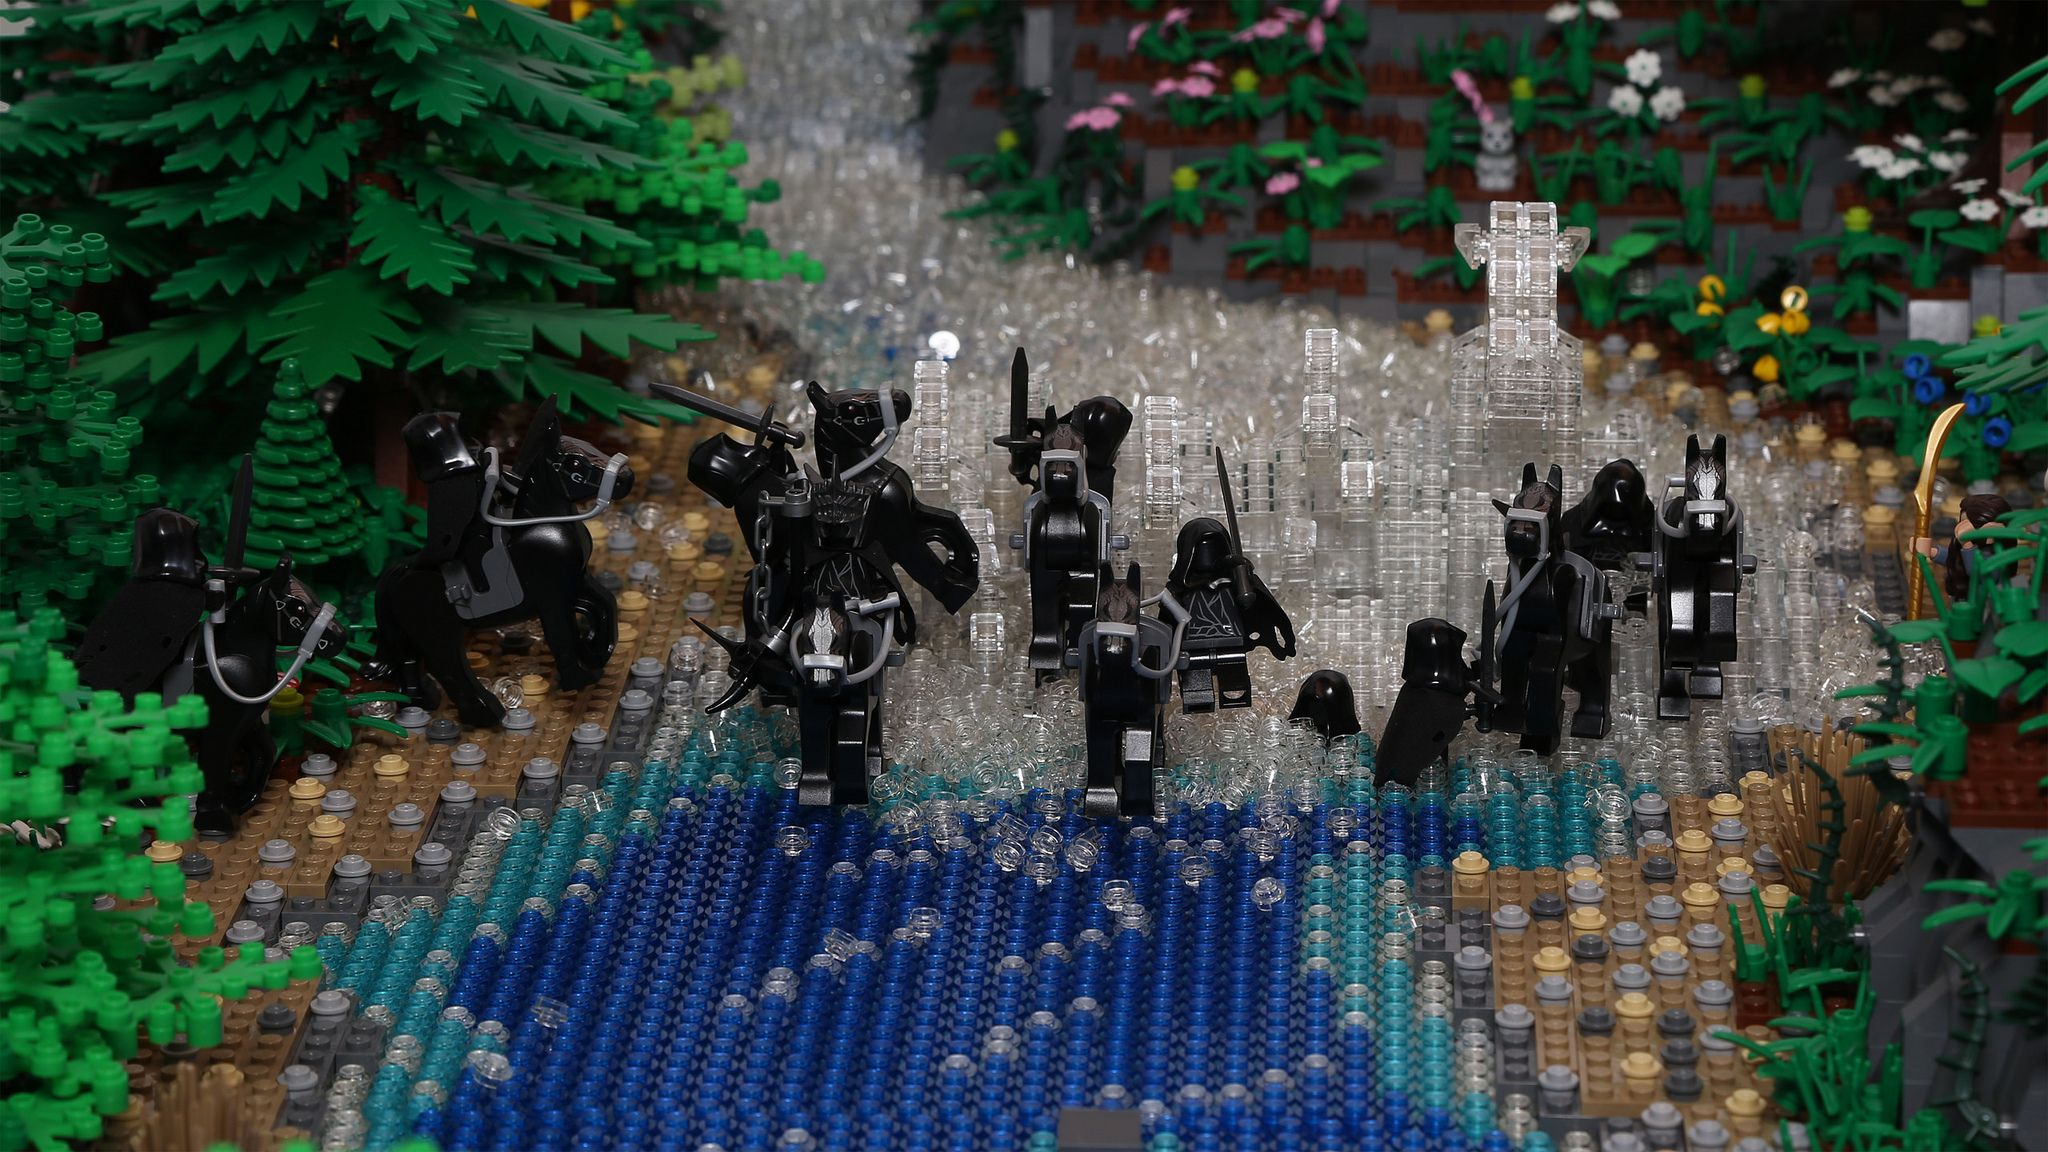 Lego Rivendell Lord Of The Rings 3